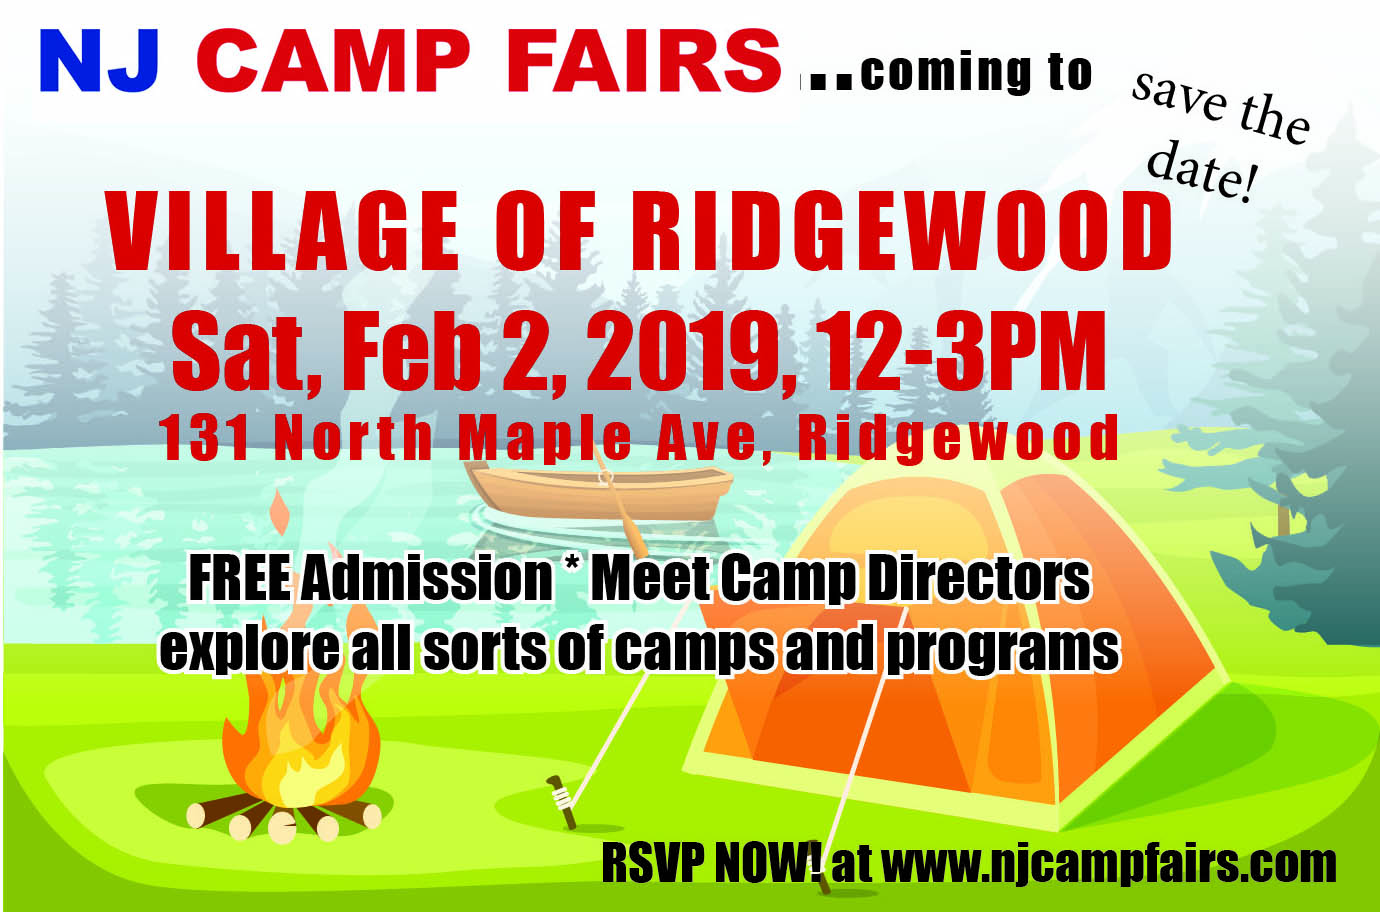 NJ CAMP FAIRS - held at Village of Ridgewood